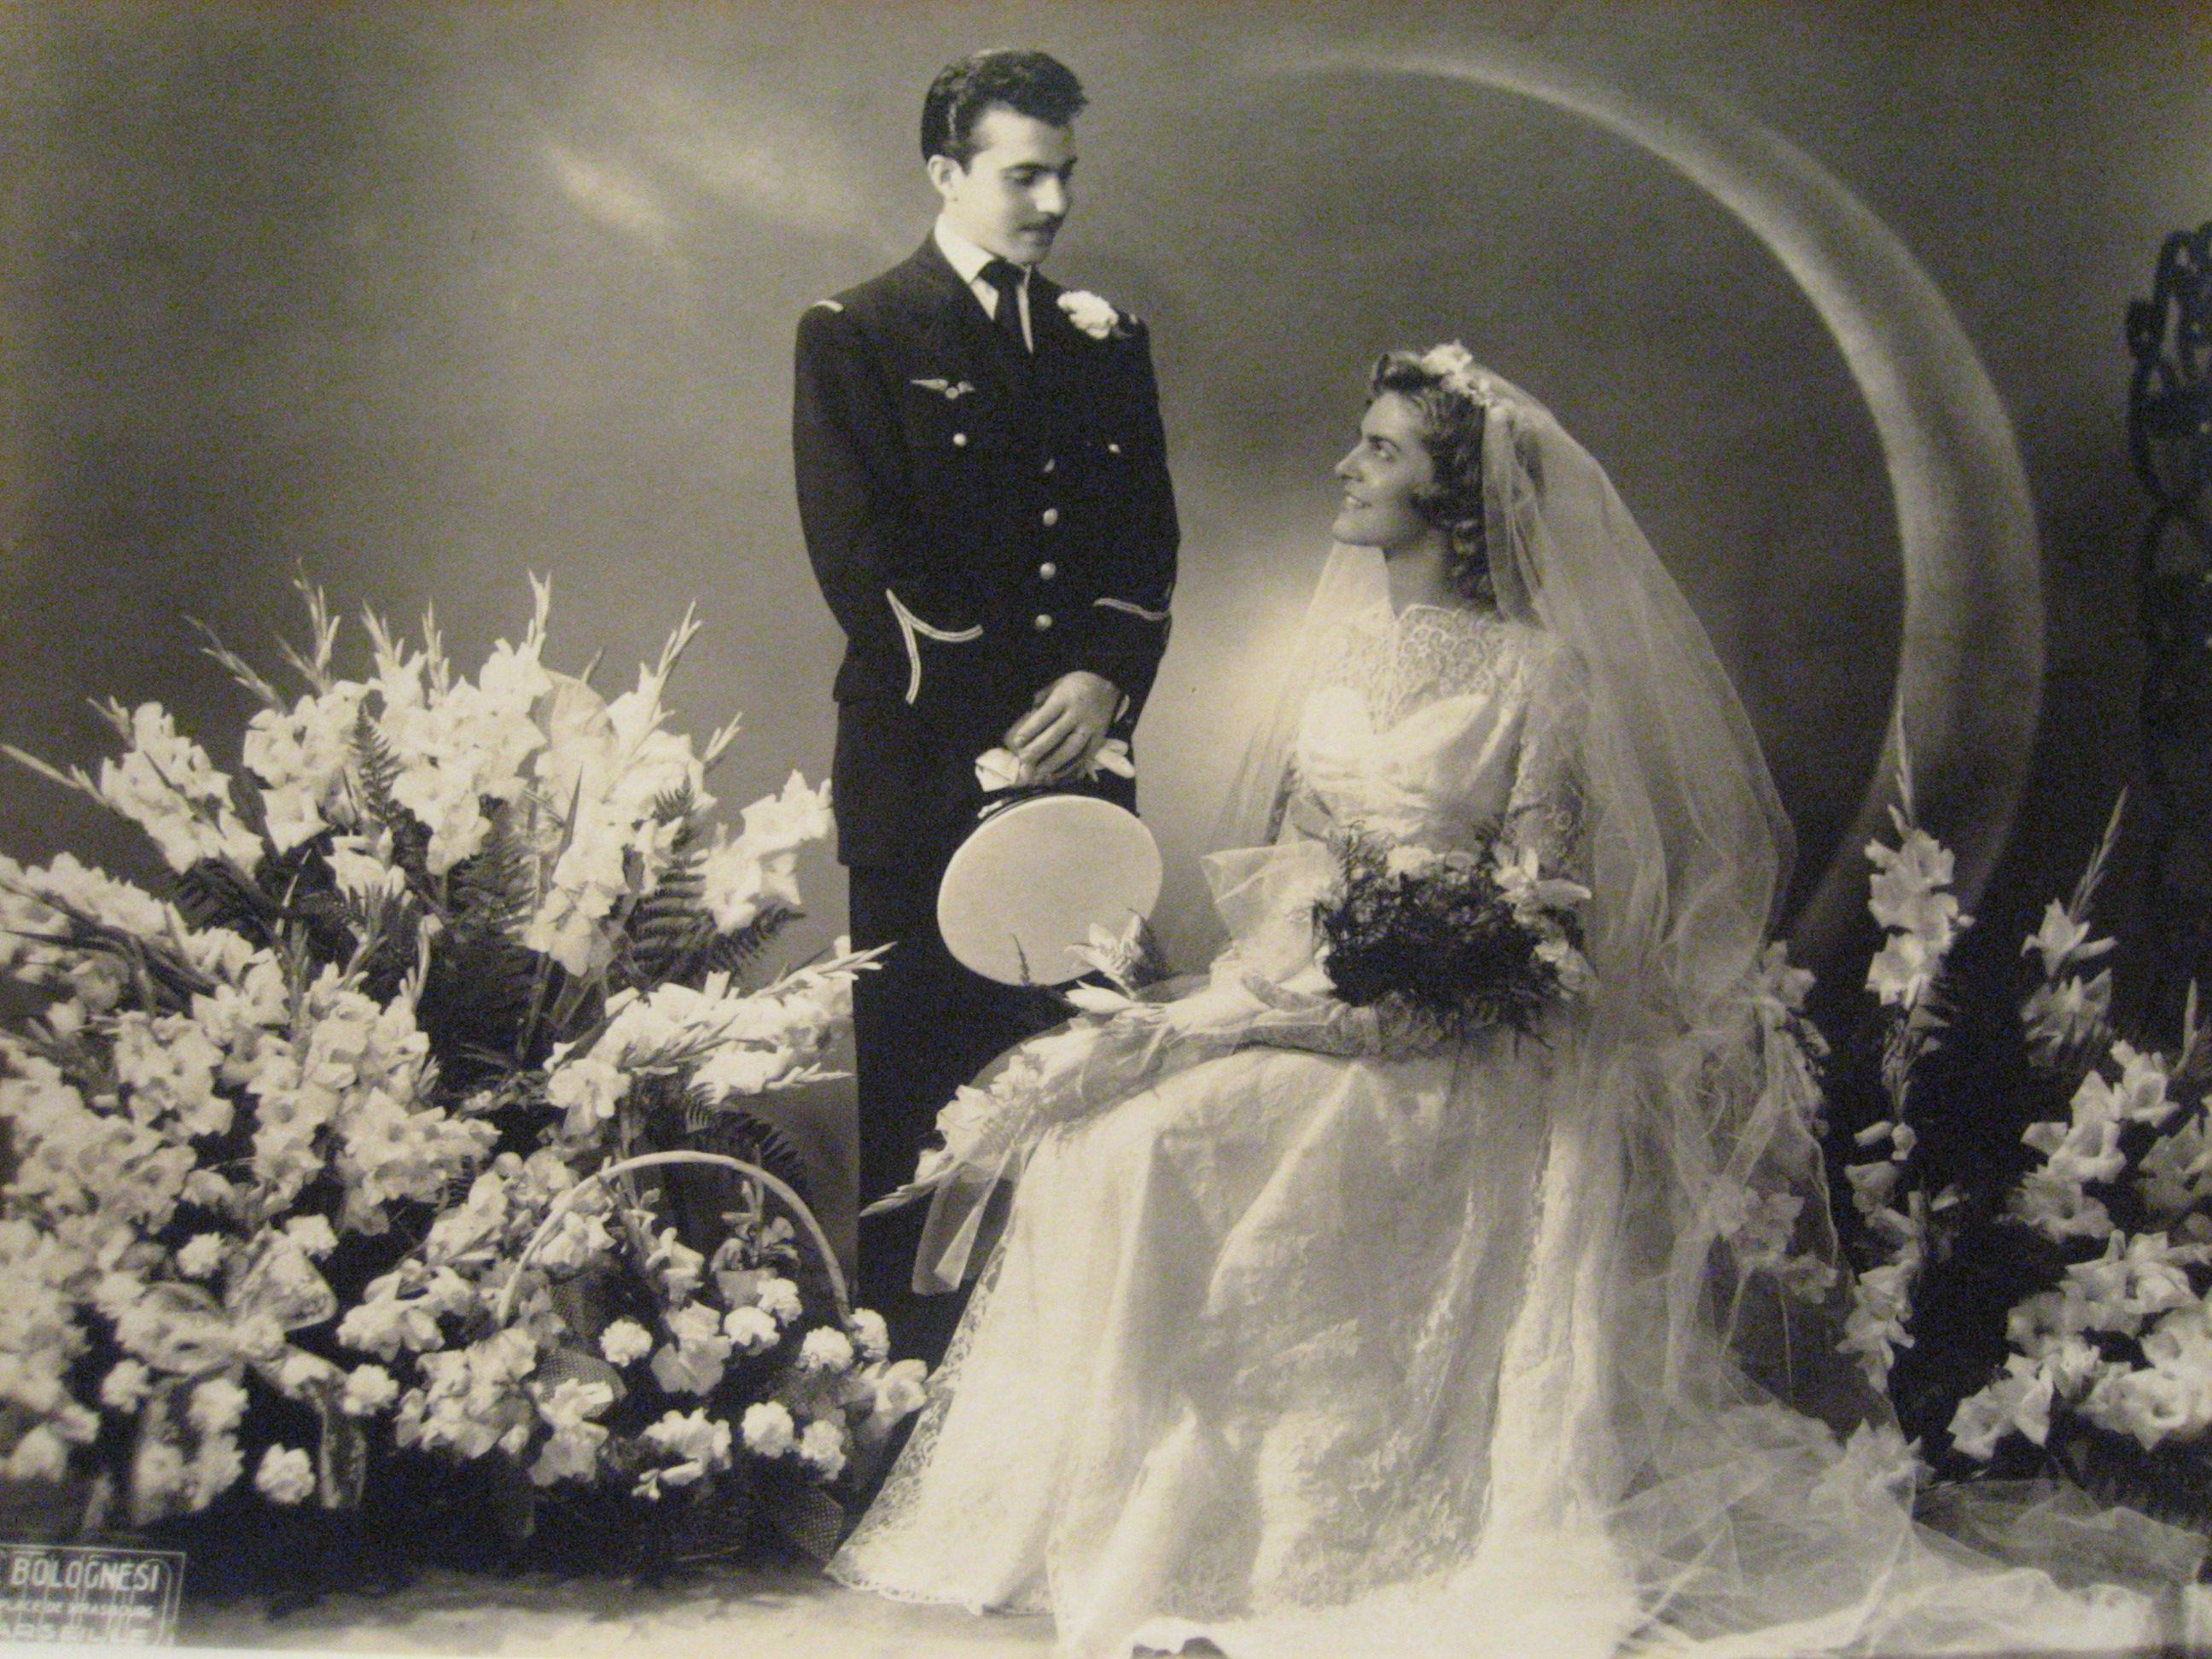 An Old Wedding Photo Belonging To A Friend Of Mine! How